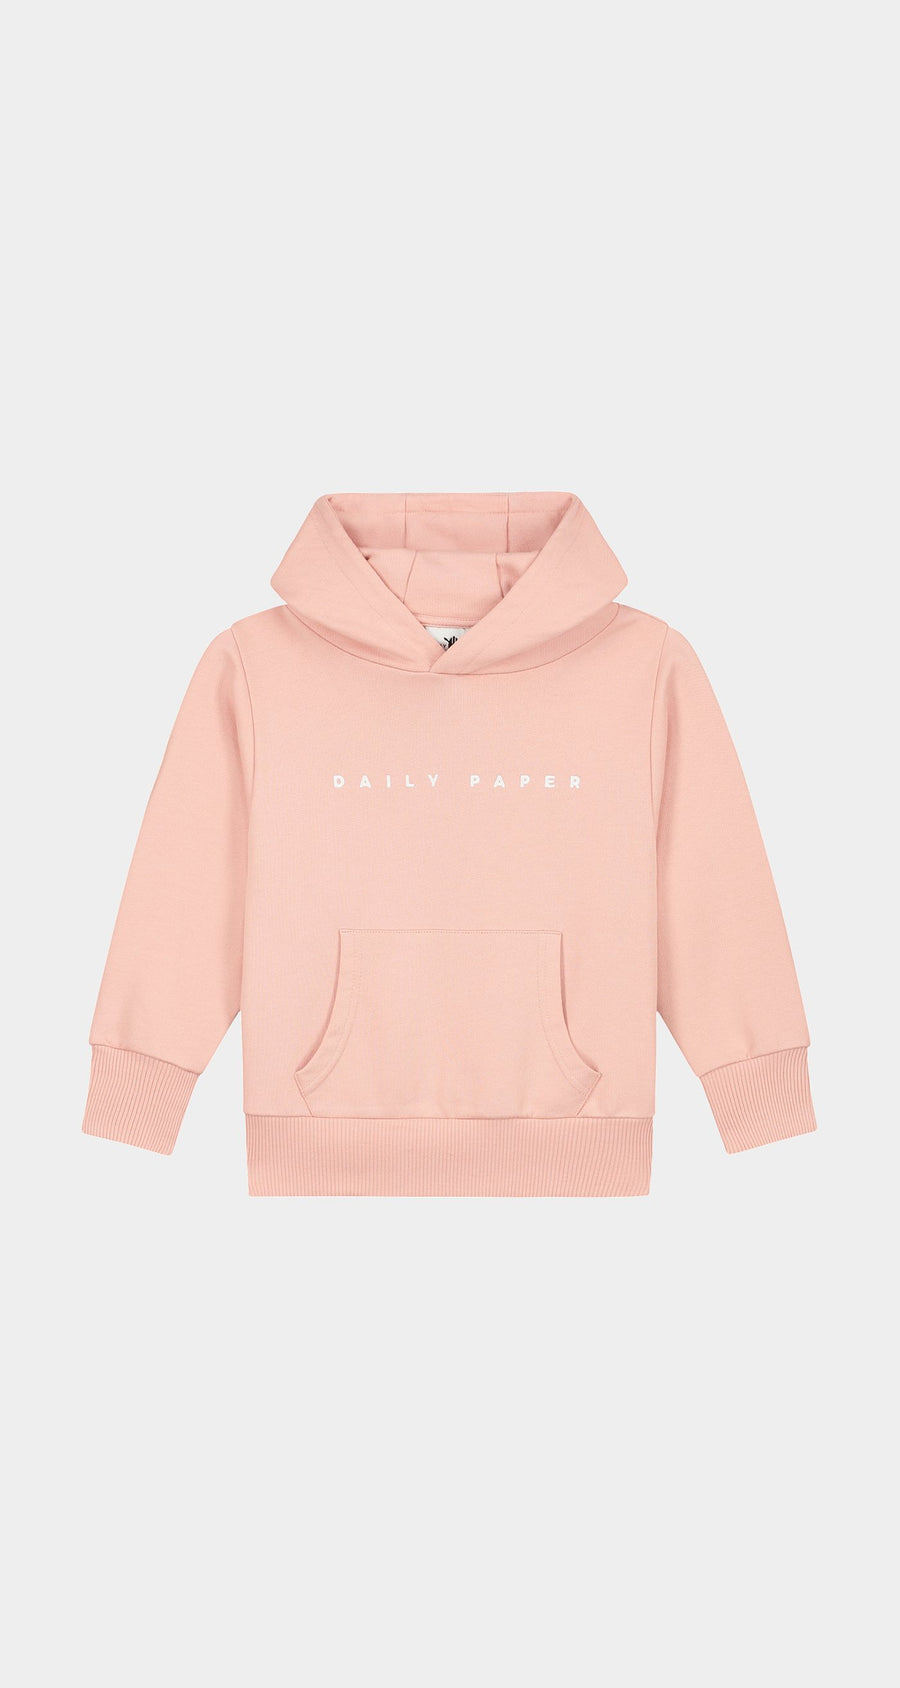 Daily Paper - Misty Rose Kids Alias Hoody Front